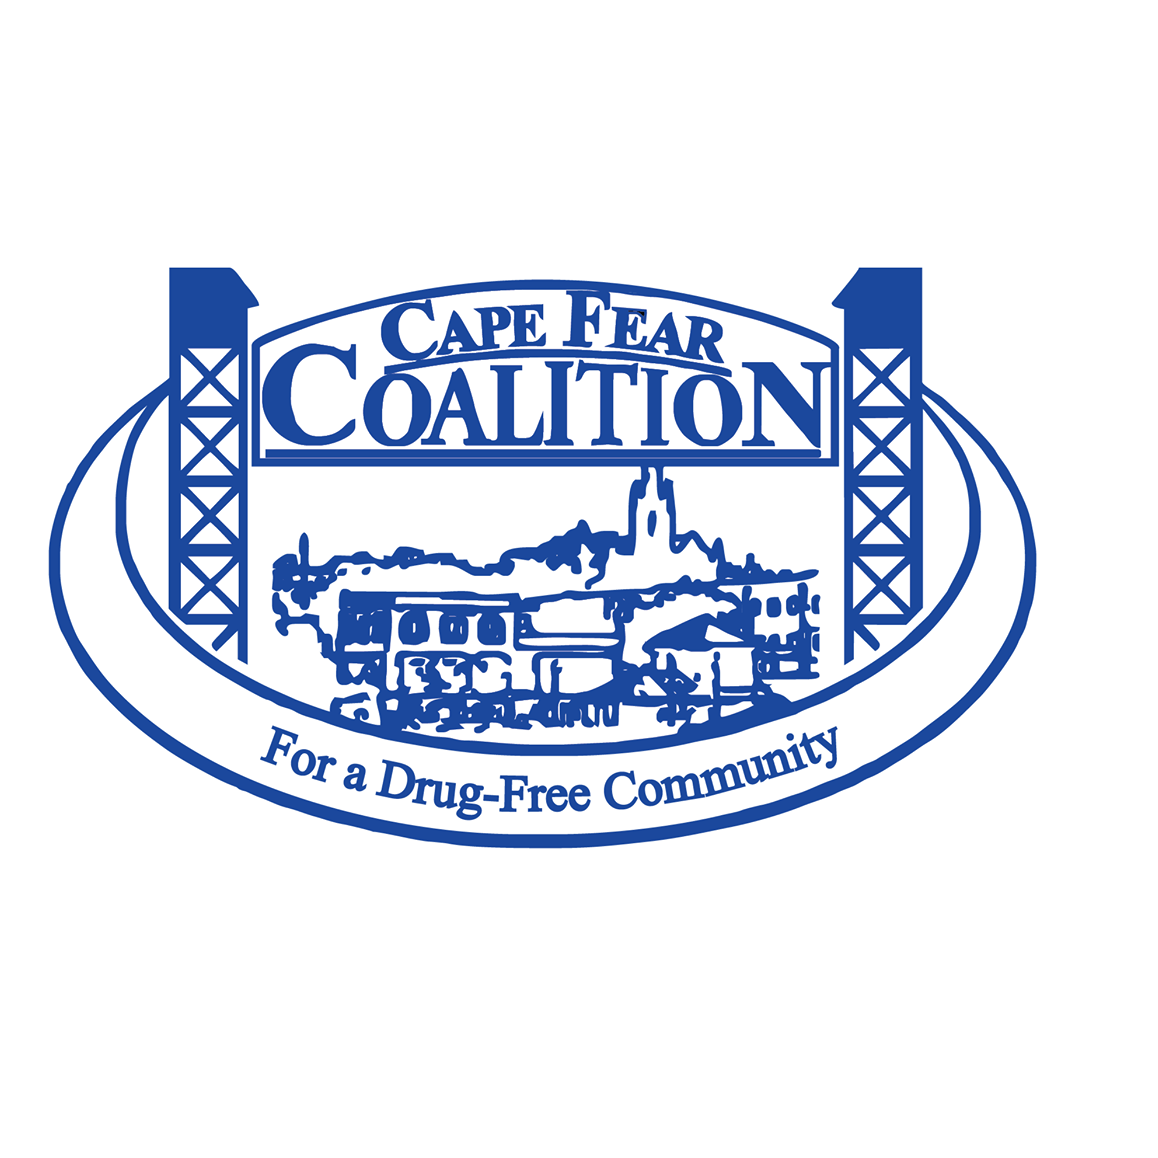 Cape Fear Coalition for a Drug Free Community